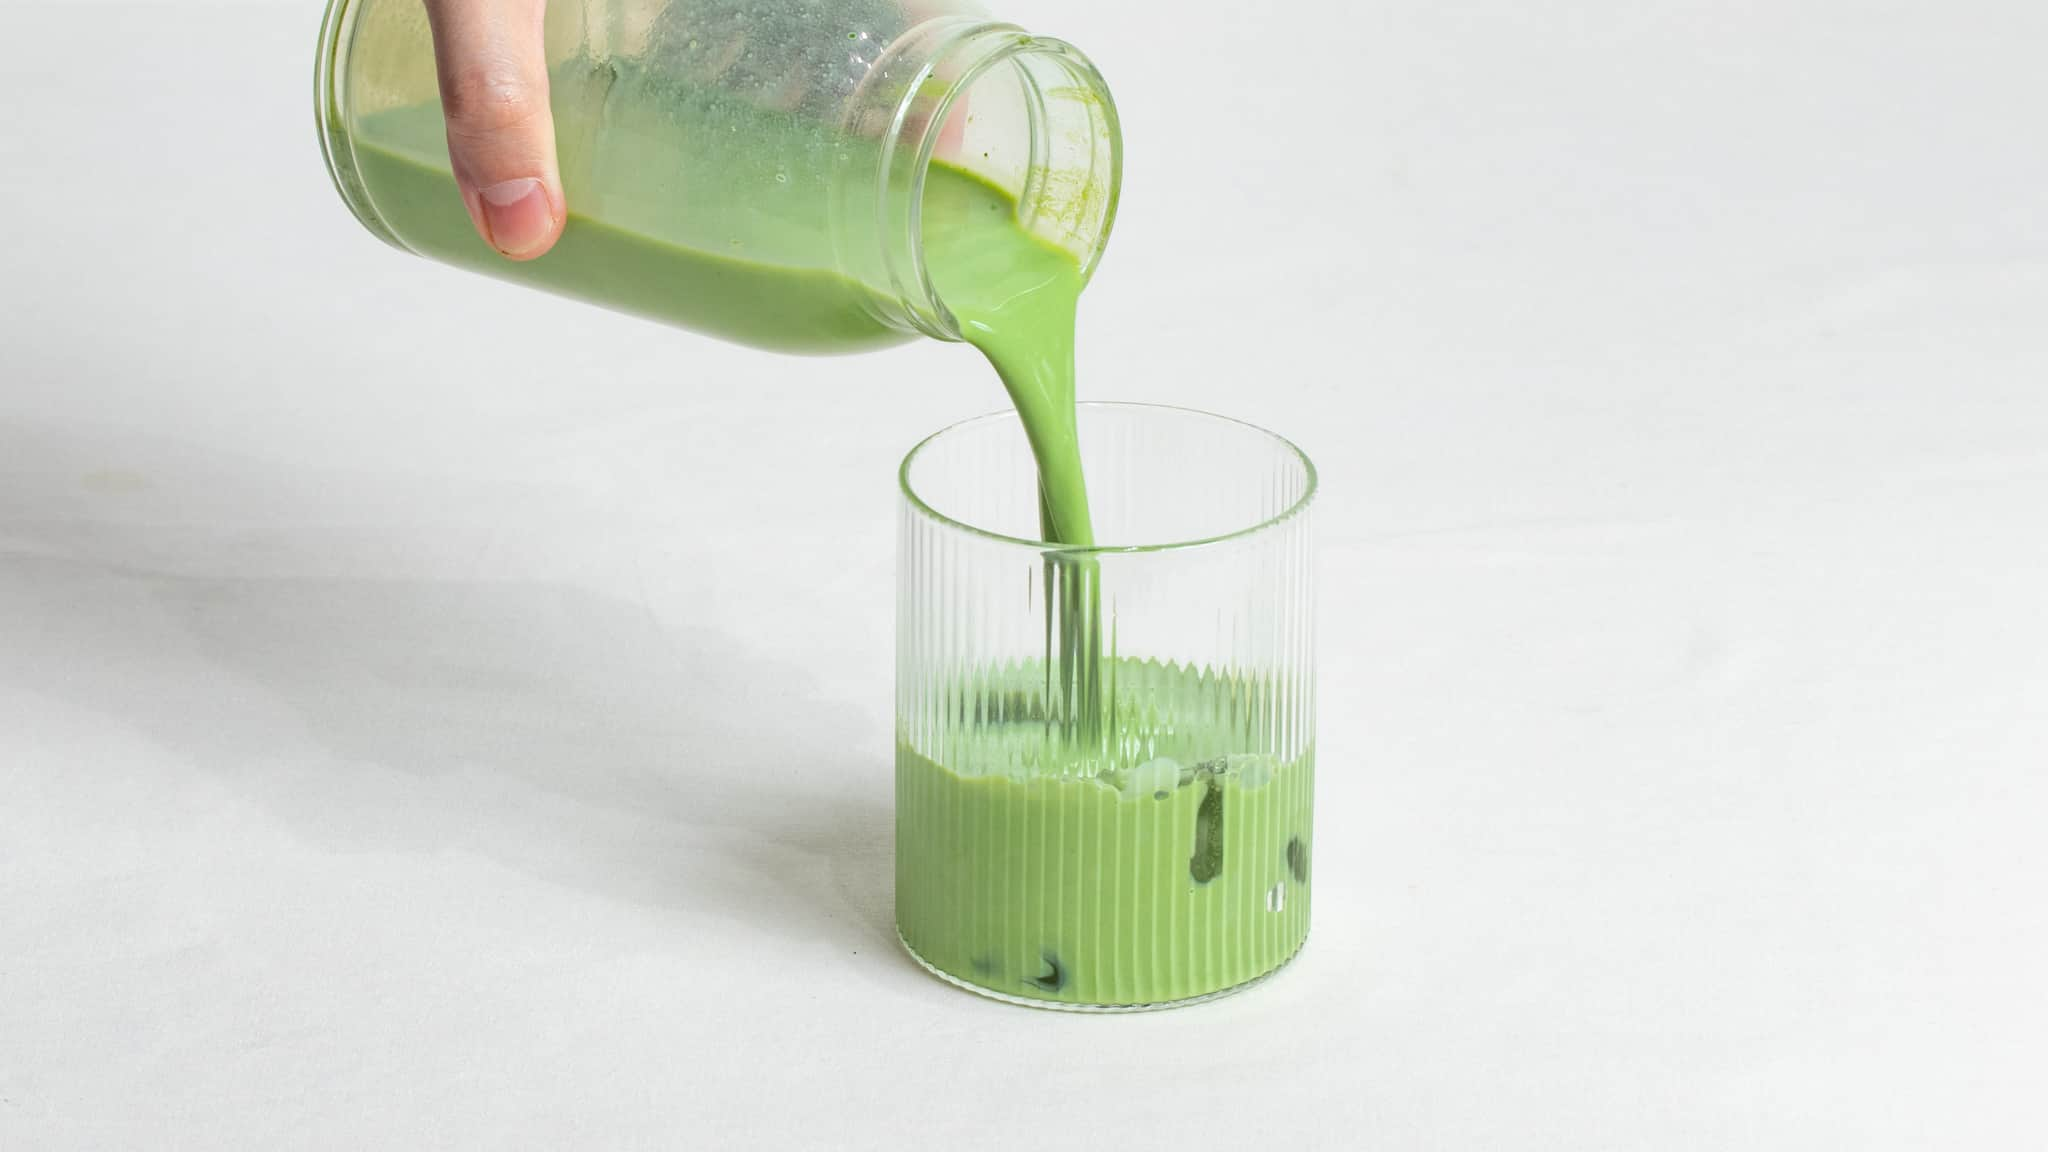 Hand pouring iced matcha latte into glass